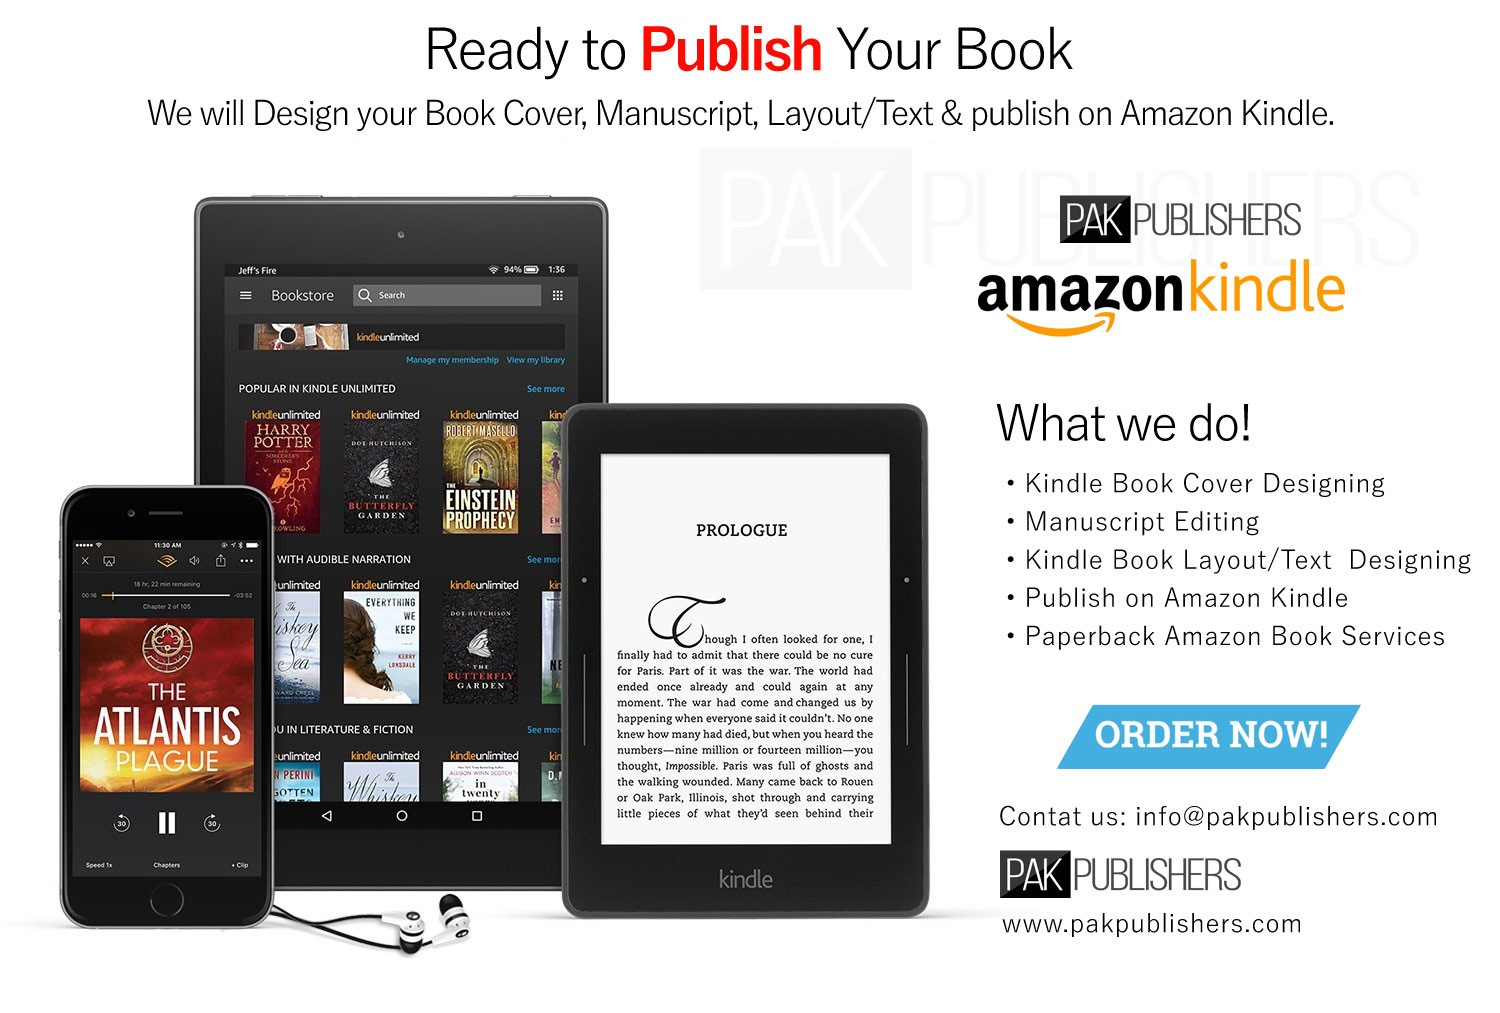 Amazon Kindle KDP Book Cover Design, Interior Formatting and Manuscript Layout services